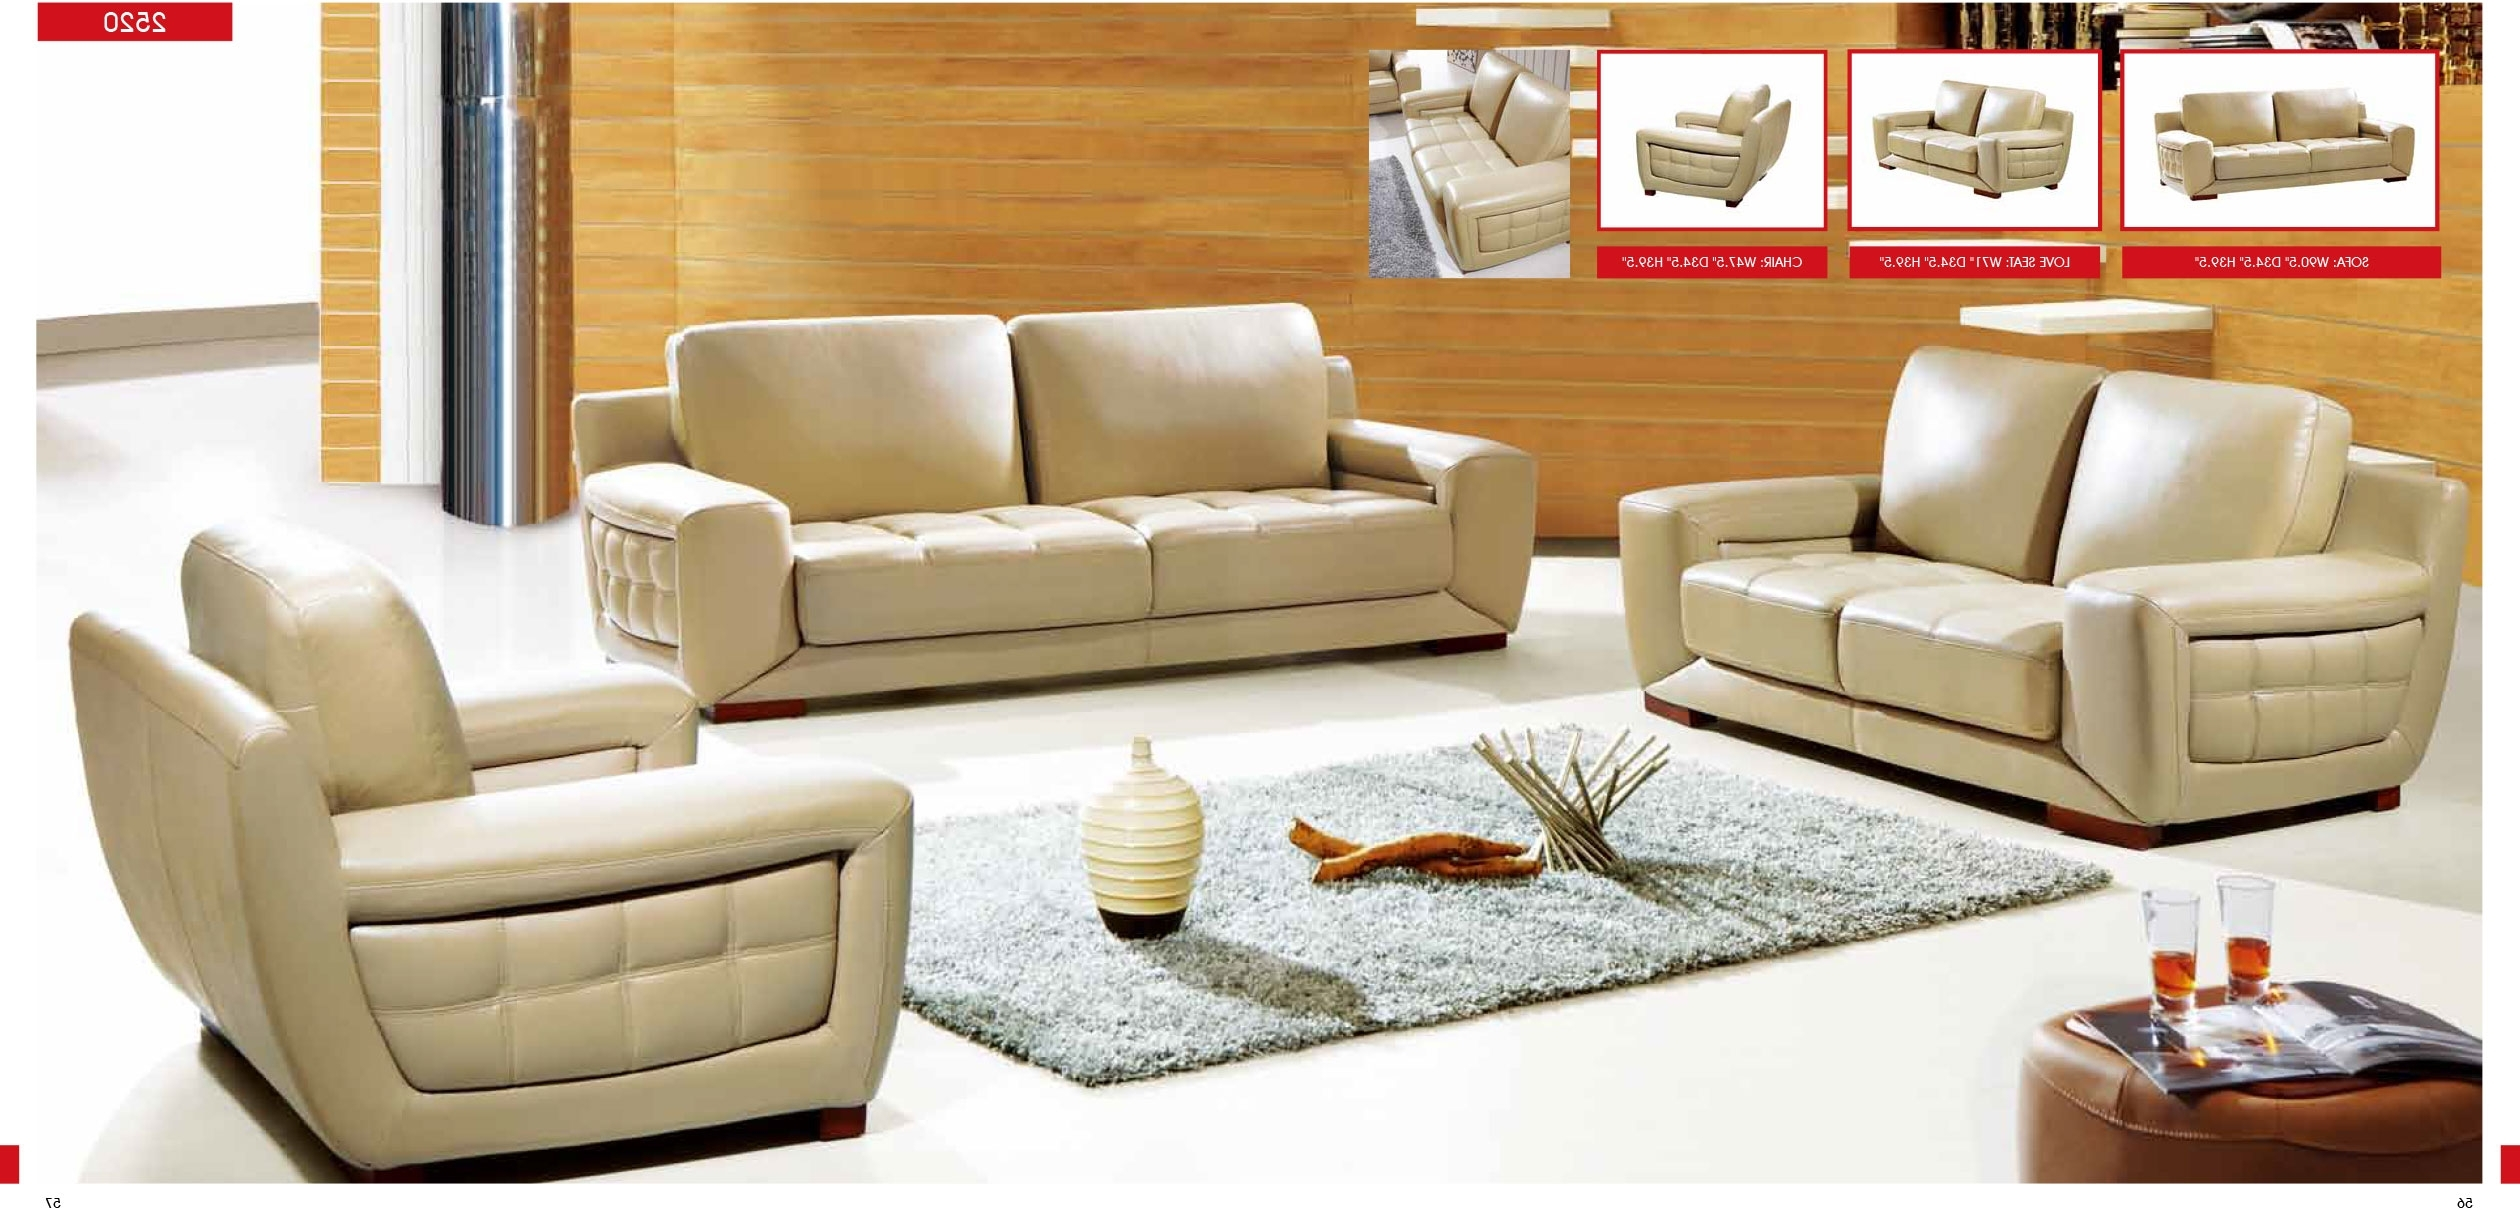 Trendy Cream Colored Sofas Regarding Manhattan Cream Colored Leather Sectional Sofa (View 10 of 15)